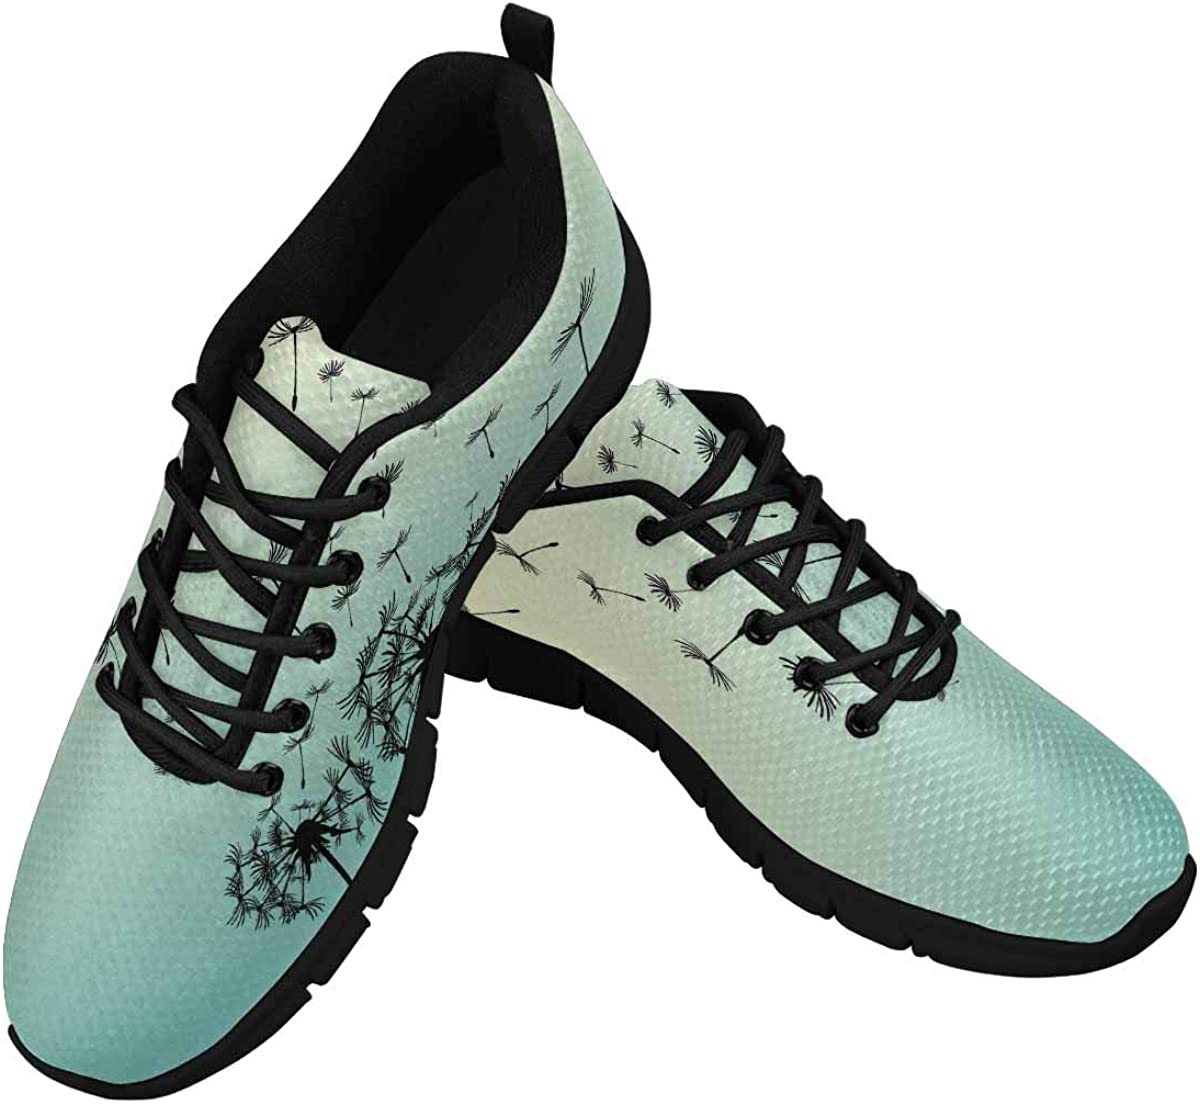 INTERESTPRINT Abstract Dandelions Women's Lightweight Sneakers Mesh Breathable Yoga Shoes